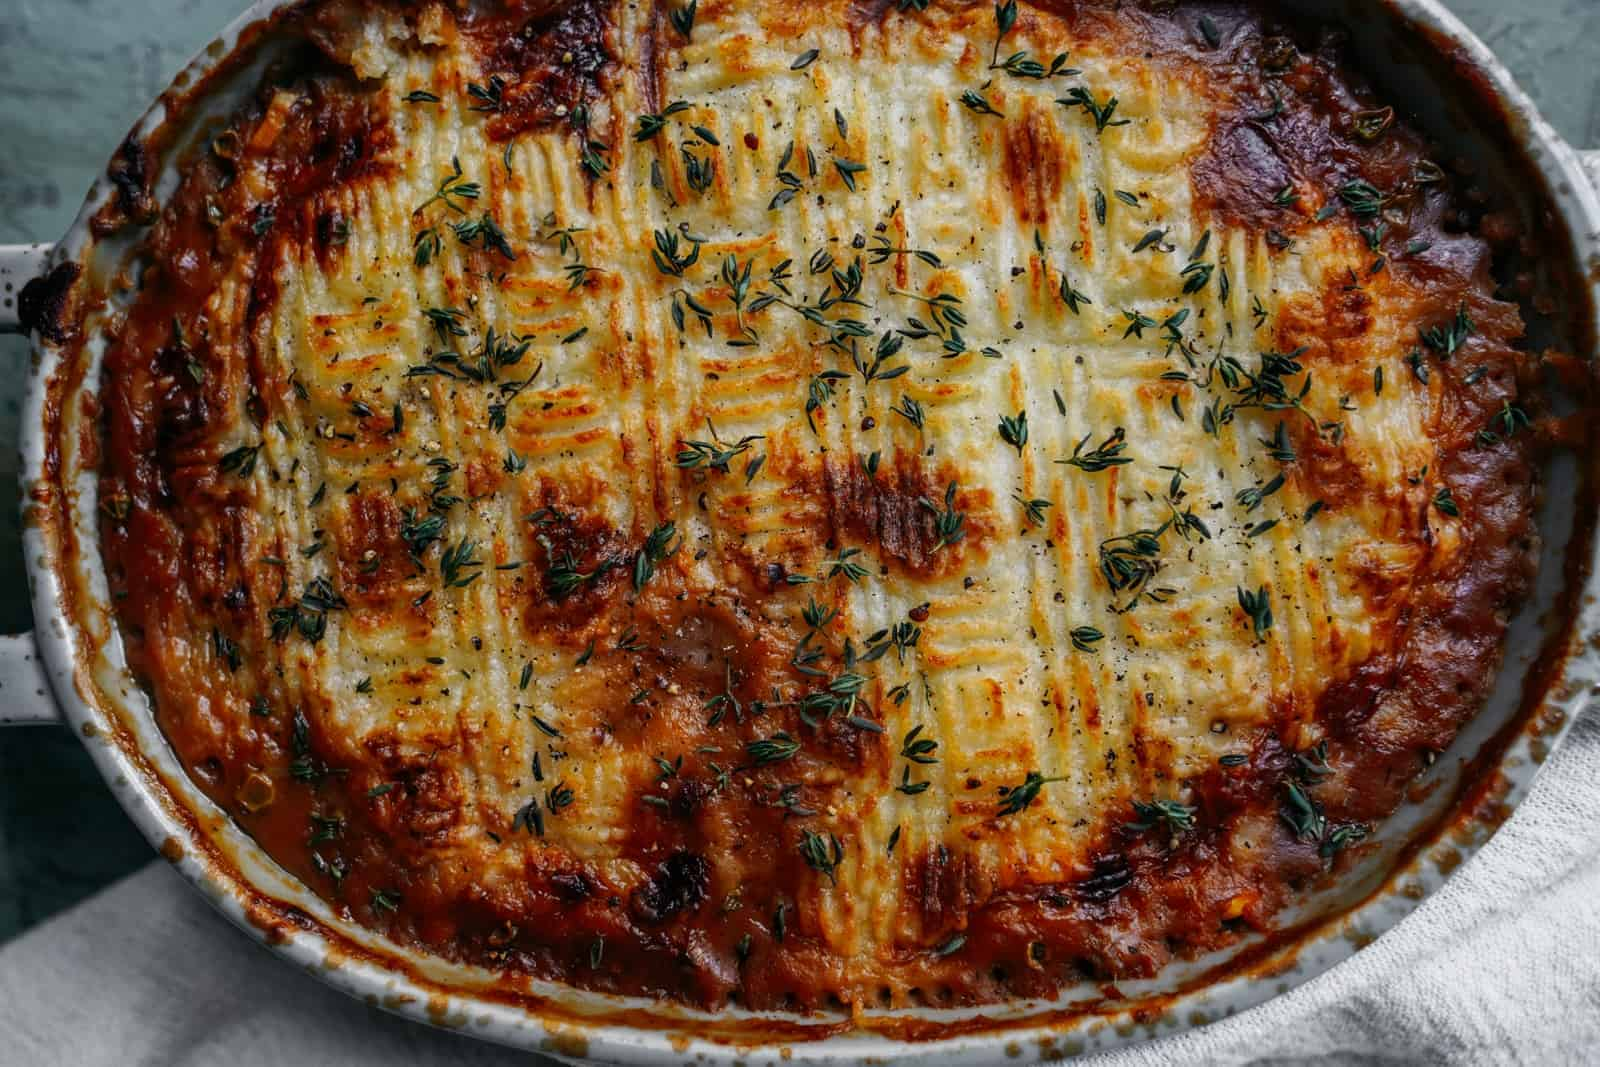 Close-up of vegan Shepherd's Pie in a baking dish